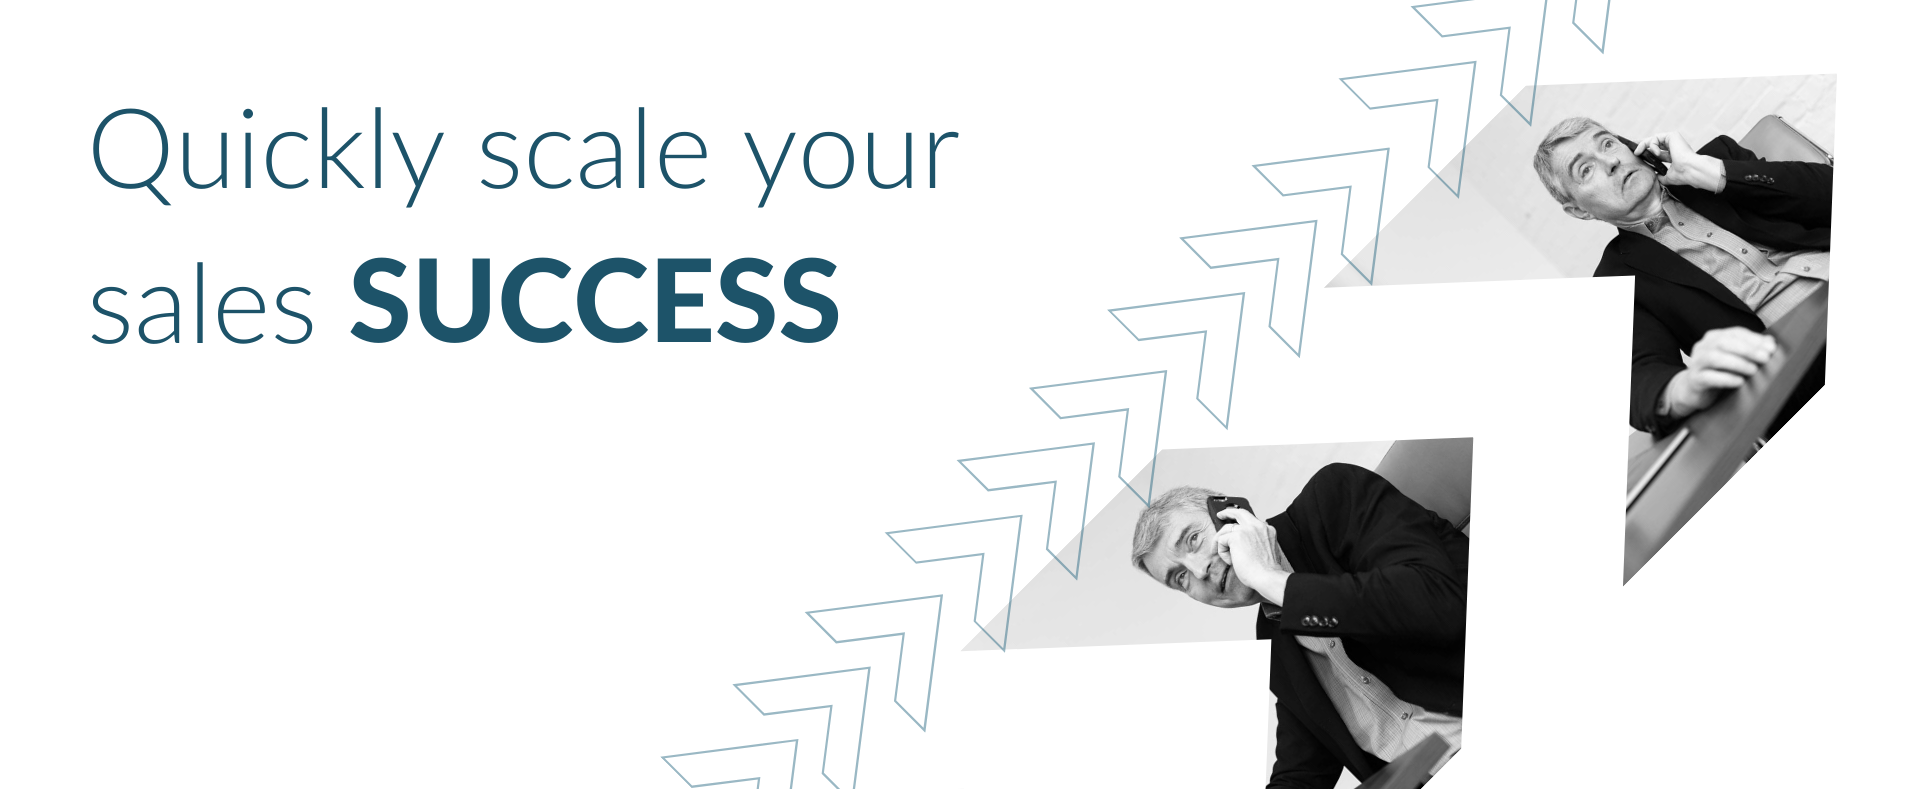 Quickly scale your sales success